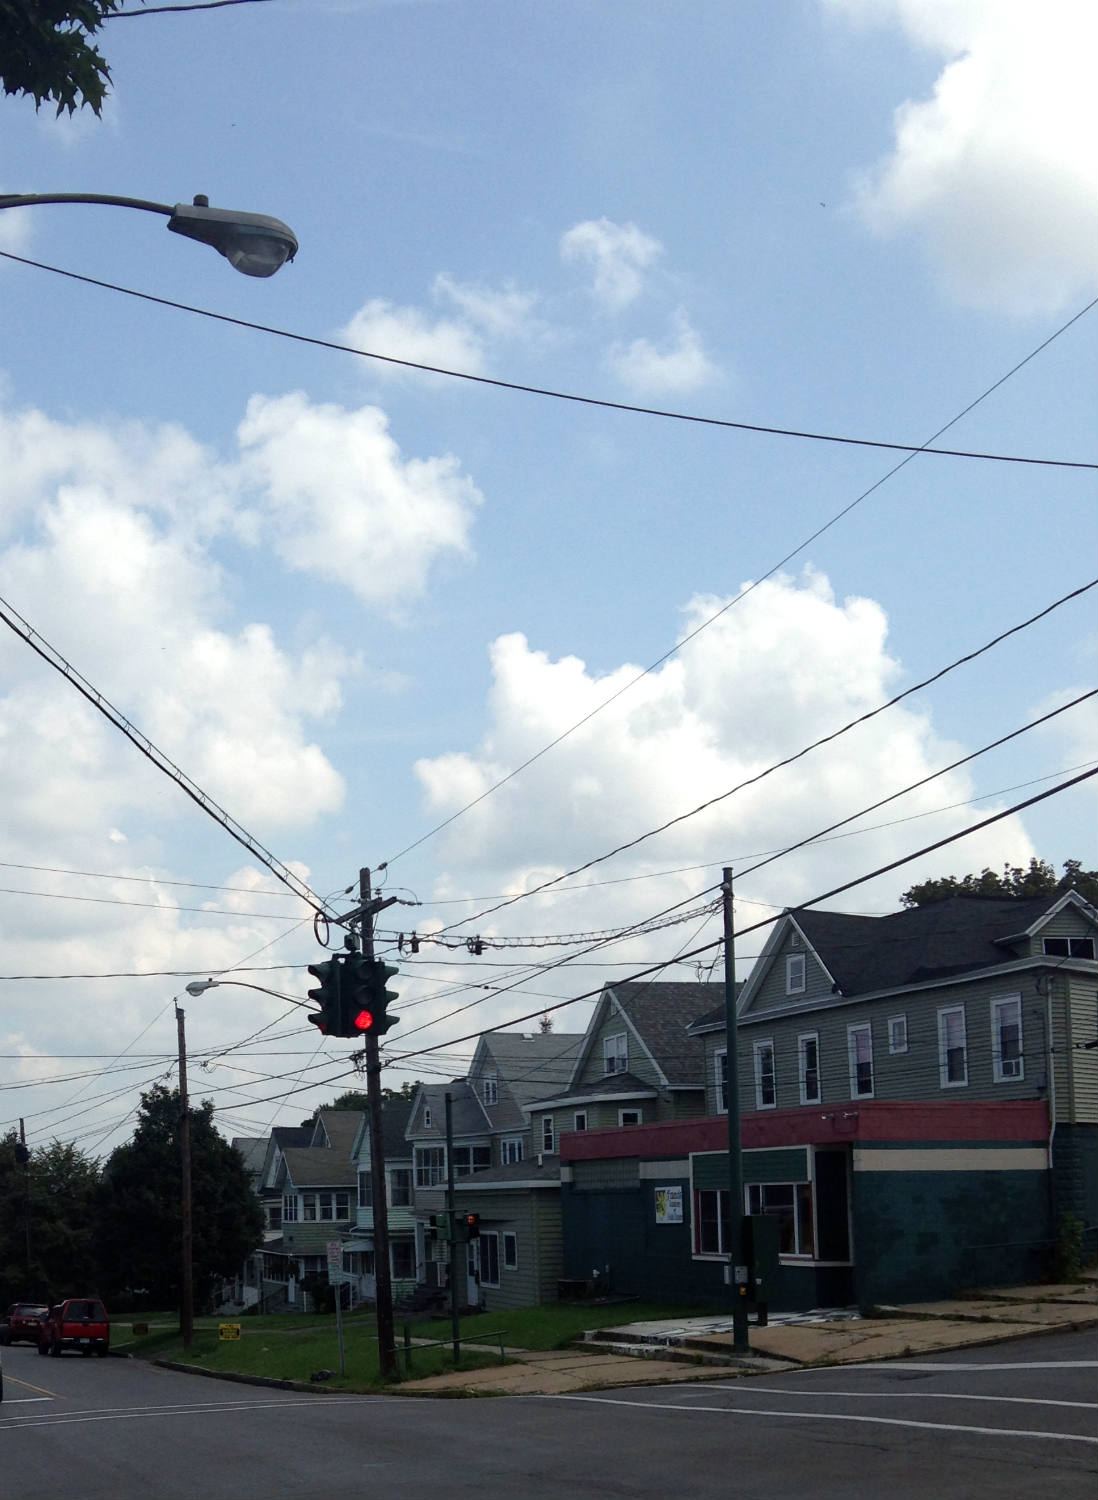 Red on Bottom Traffic Light in Irish Neighborhood